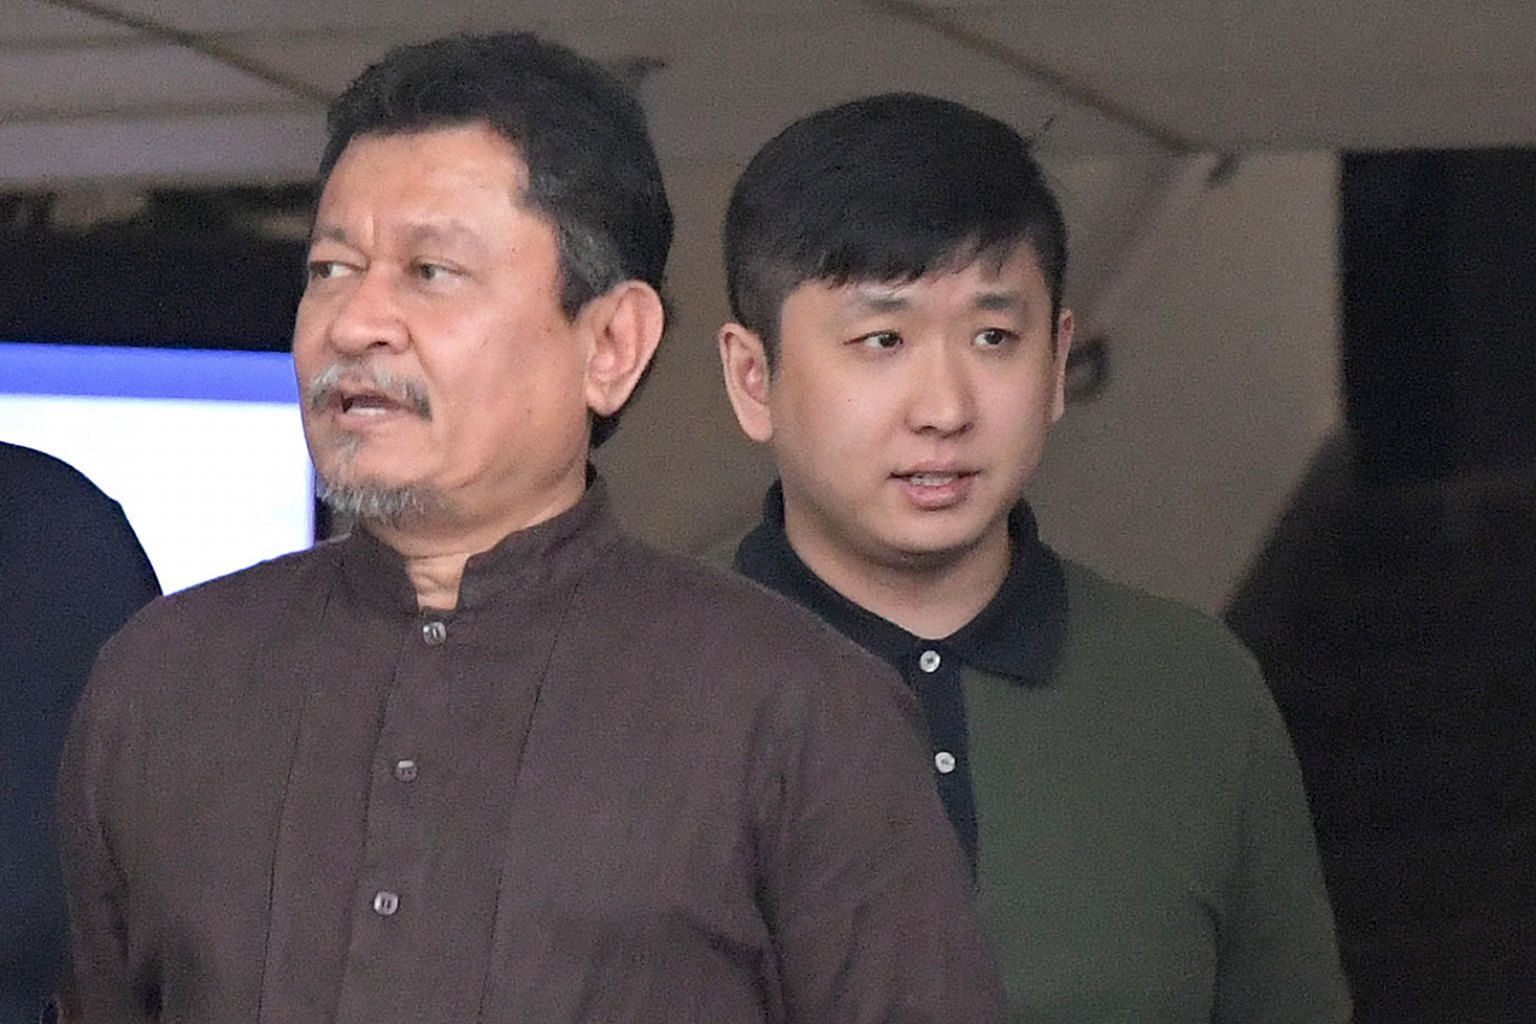 """Trading firm An-Nahl's director Abdul Nagib Abdul Aziz (left) and retail firm Synnex Trading's director Jia Xiaofeng face charges that they """"wilfully infringed"""" copyright by helping people access pirated content."""